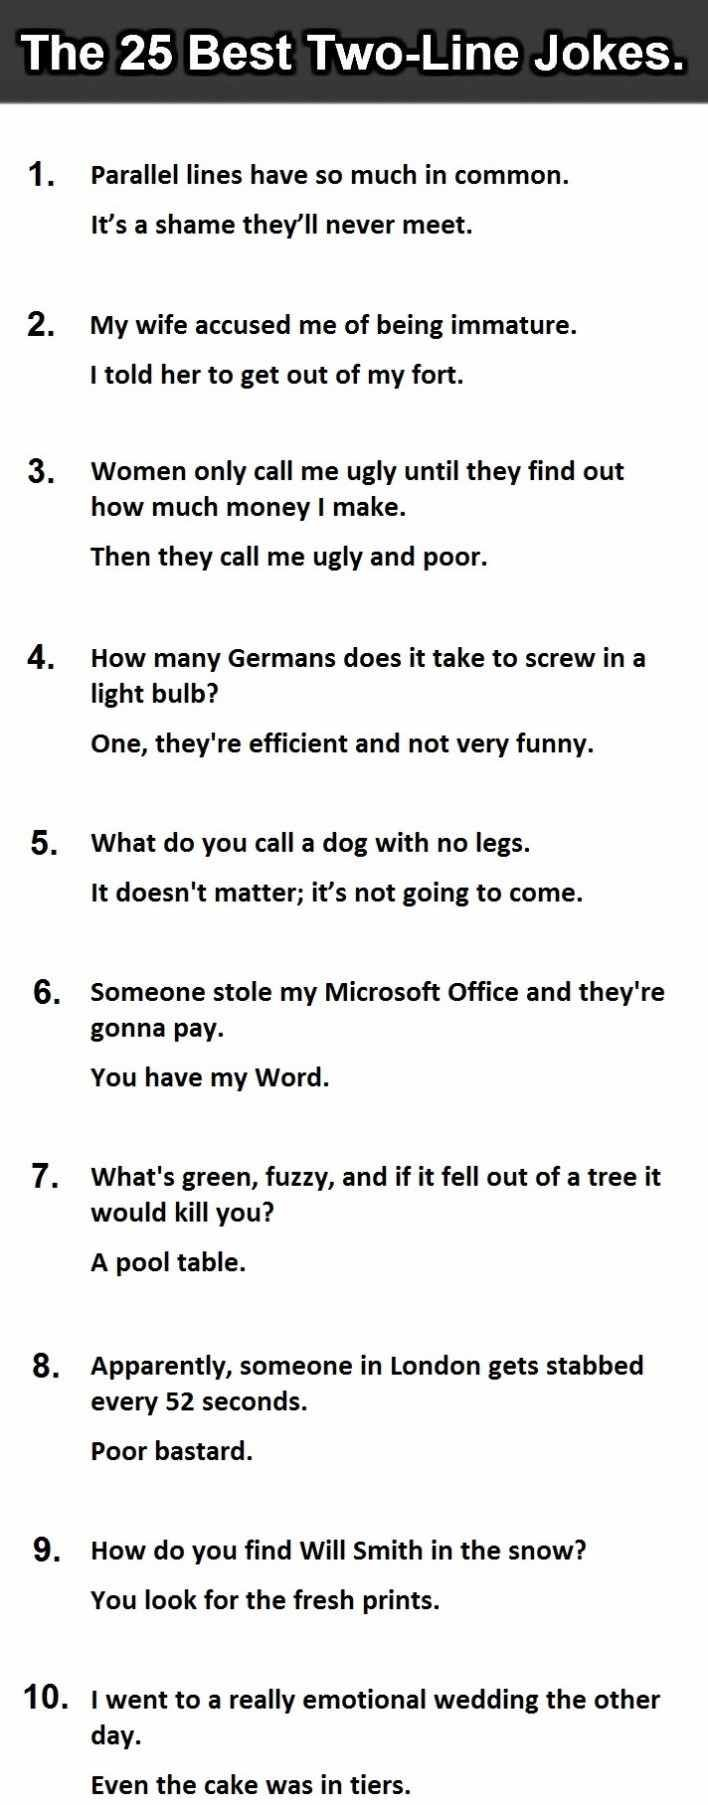 These are the kinds of jokes you learn as a kid when you're just learning to tell jokes. However some are actually pretty clever.